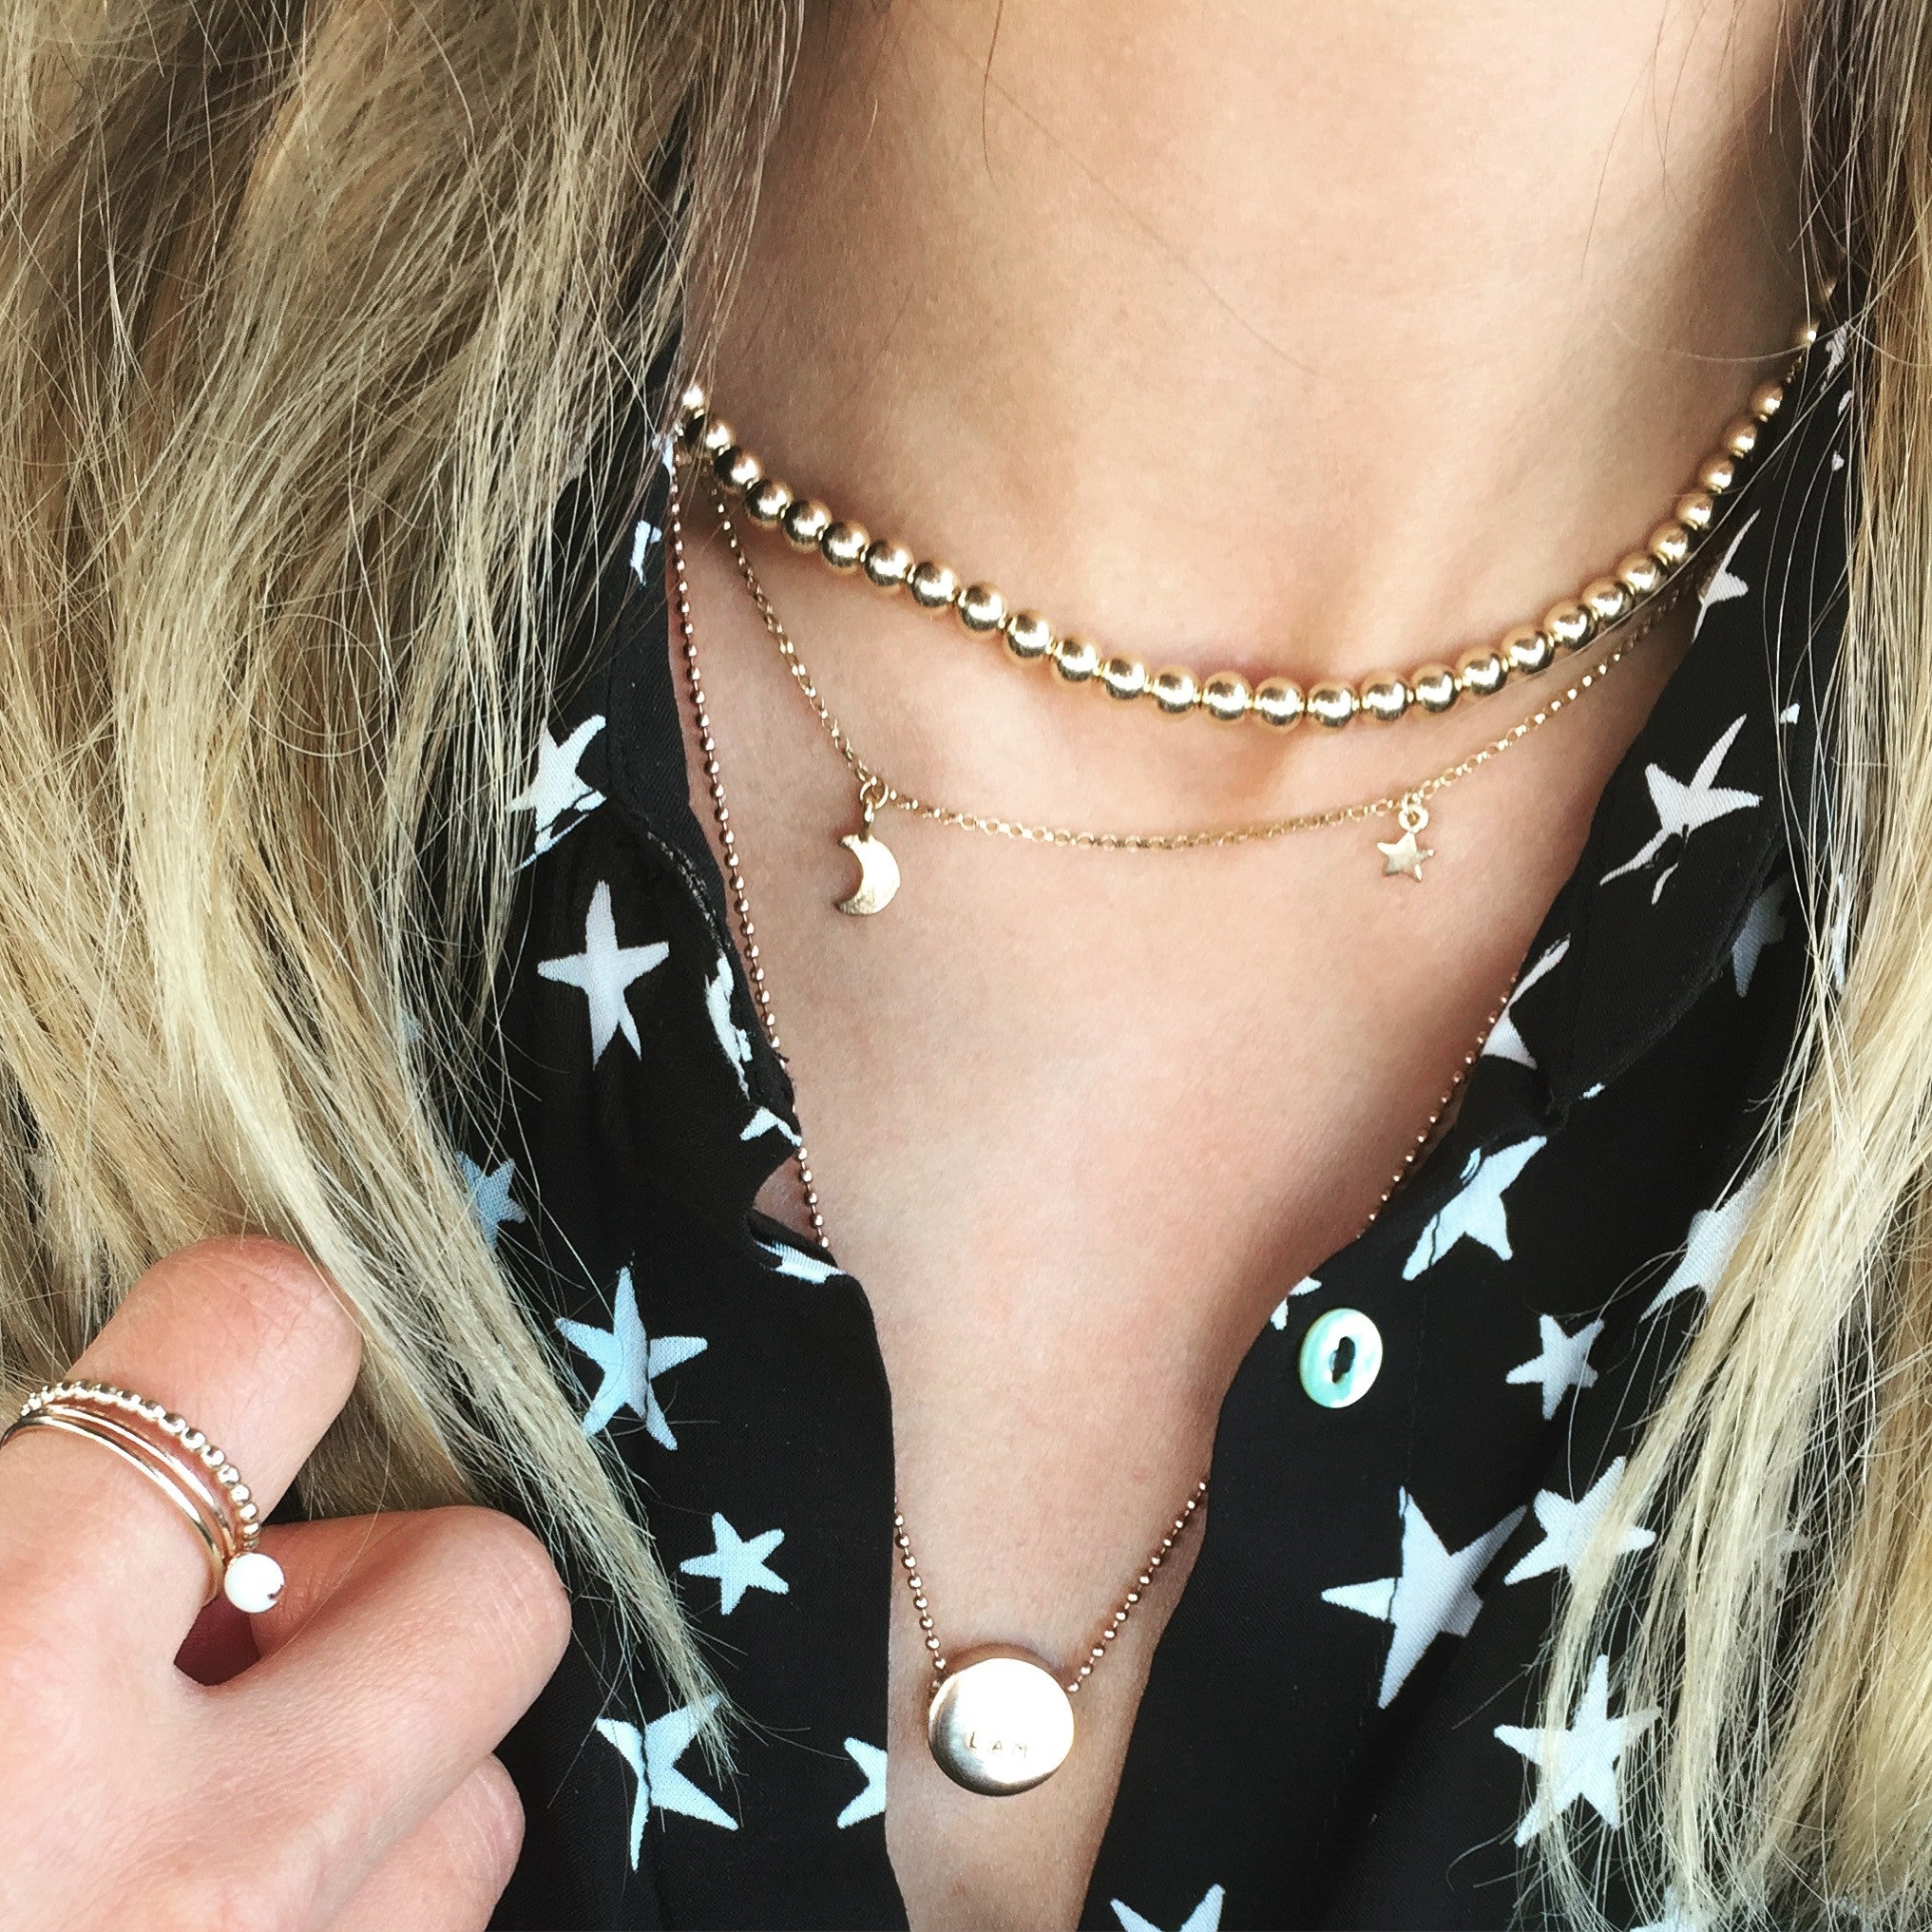 'To The Moon & Stars' Gold Necklace